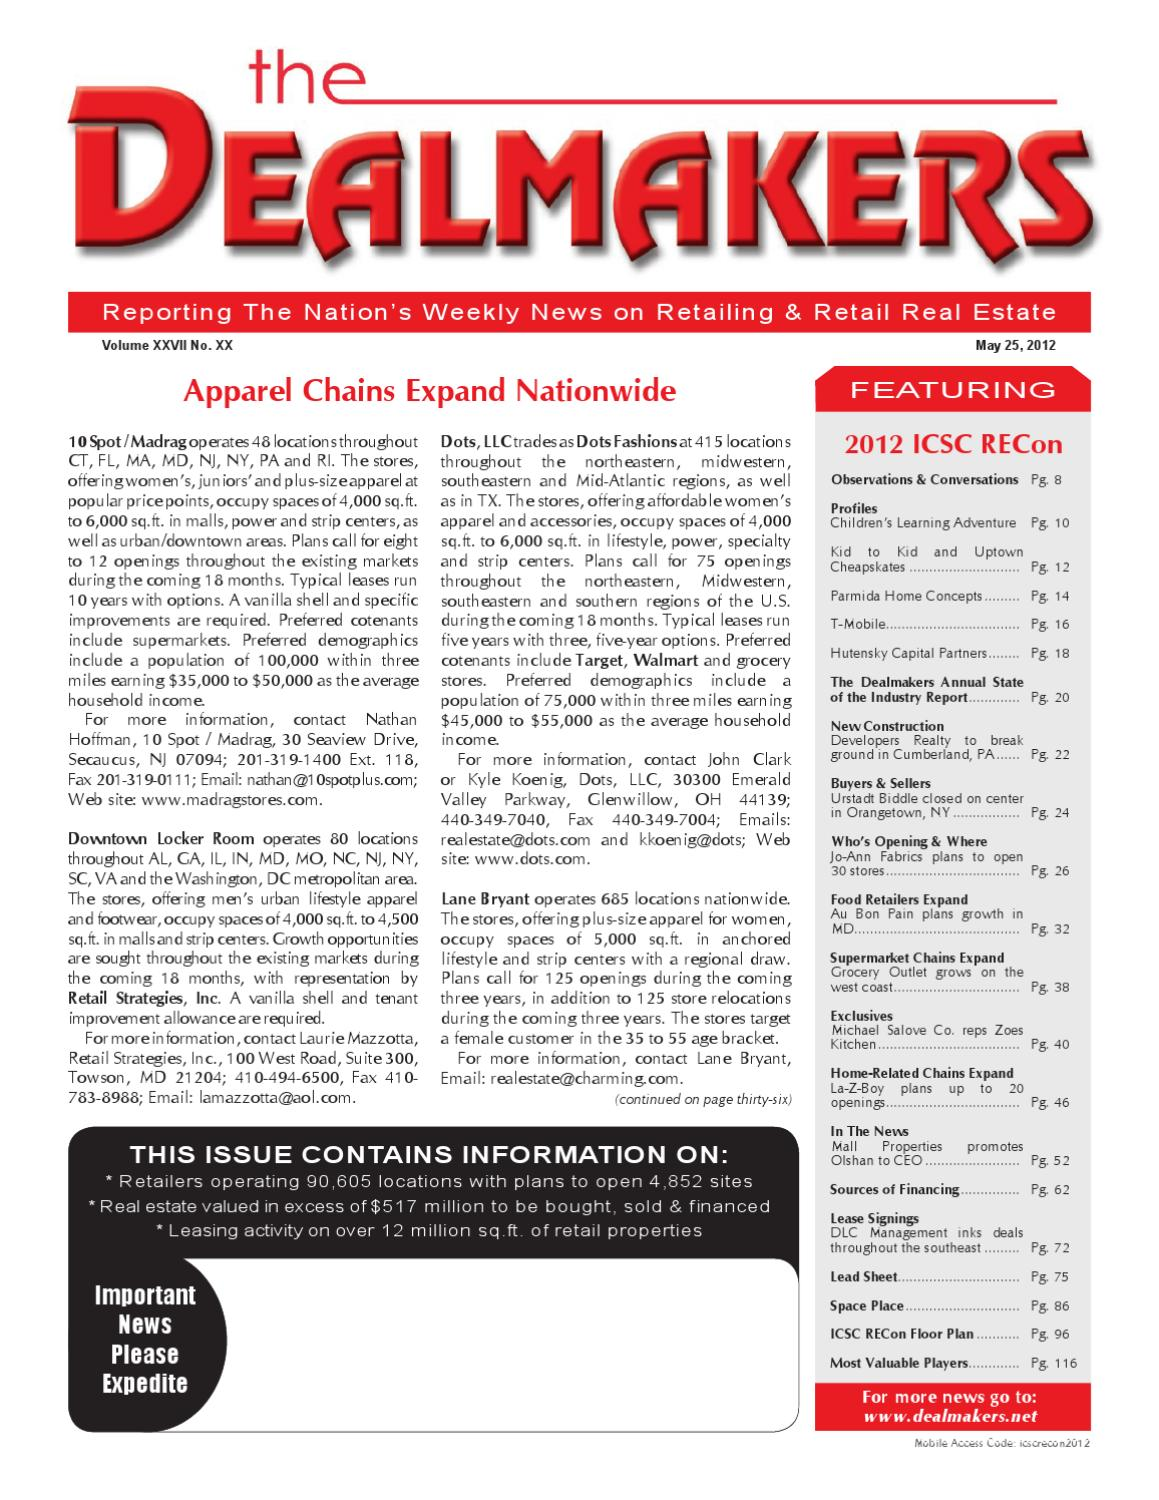 Dealmakers Magazine | May 25, 2012 by The Dealmakers Magazine - issuu